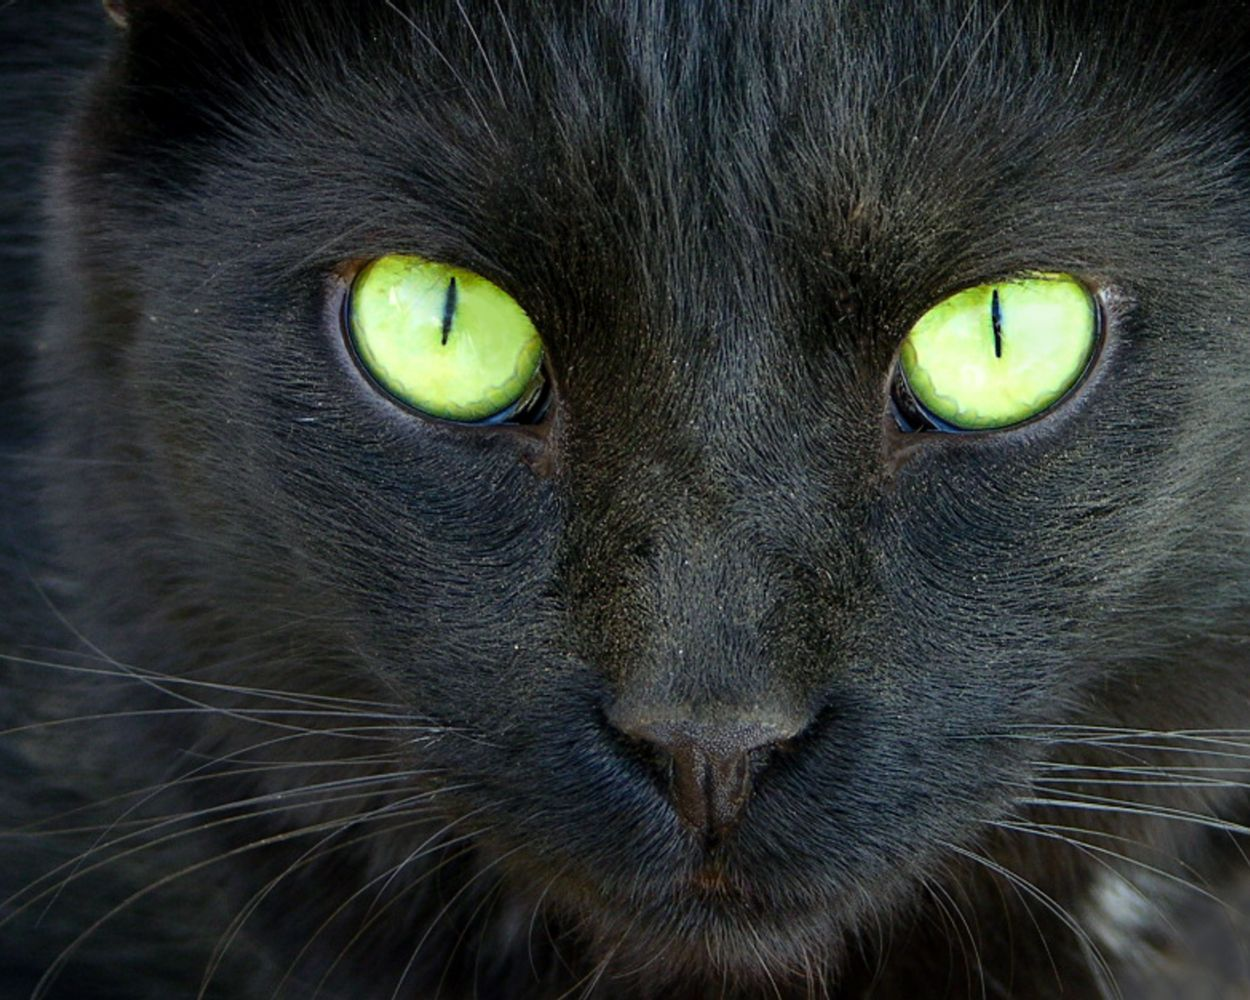 images of black cats with green eyes Boo Black Cat